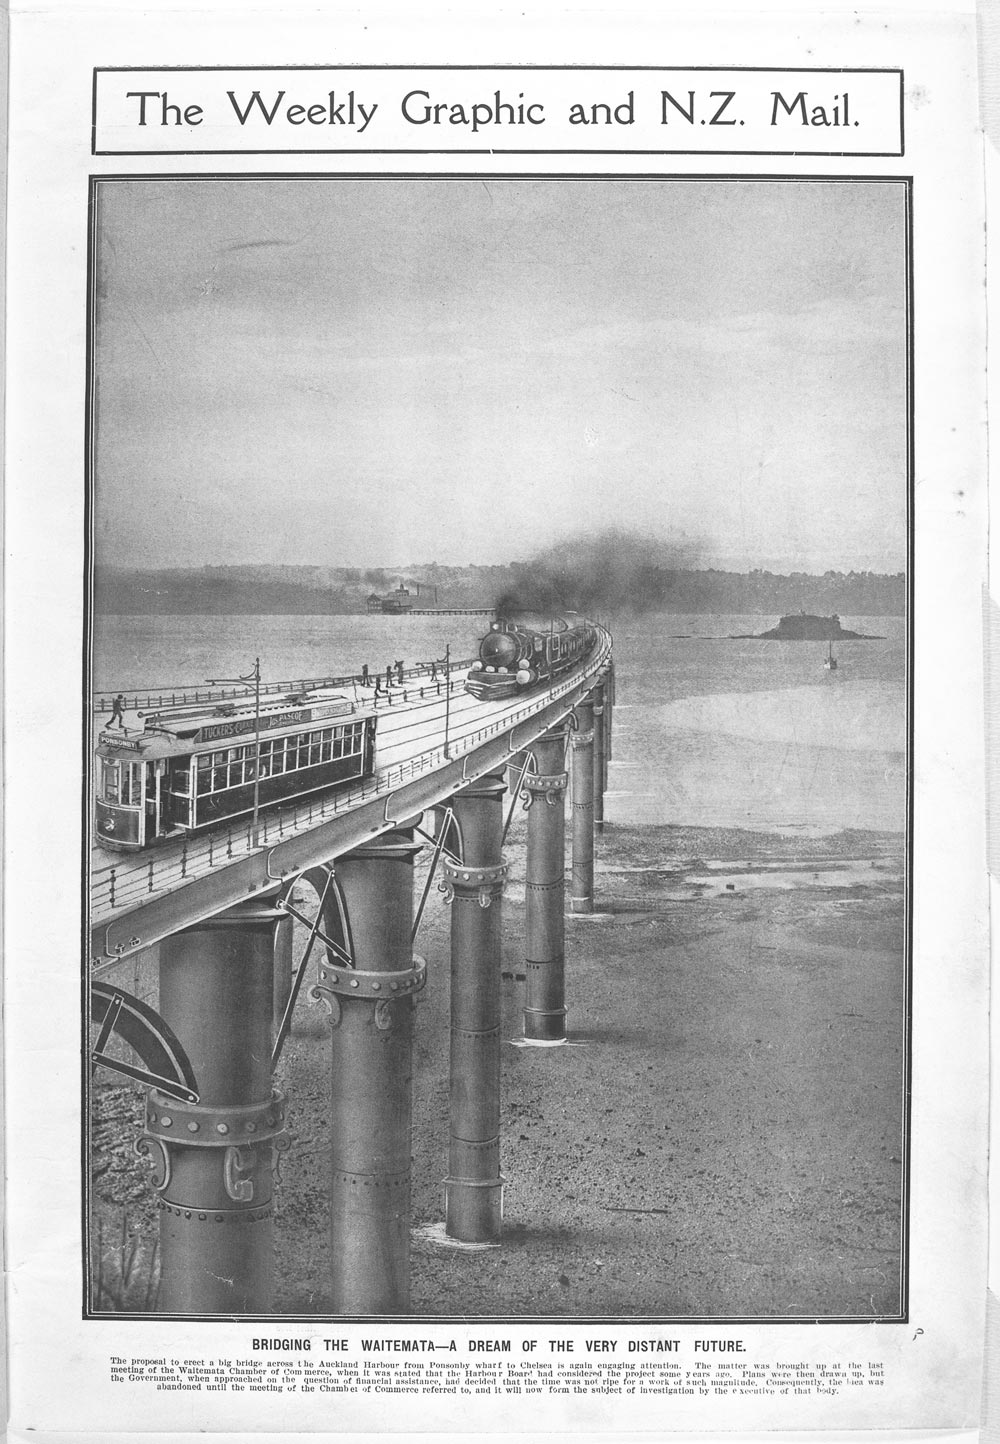 This was a proposal published in an Auckland publication in 1911 for a proposed Harbour Bridge with trams and trains from Ponsonby Wharf to Chelsea.